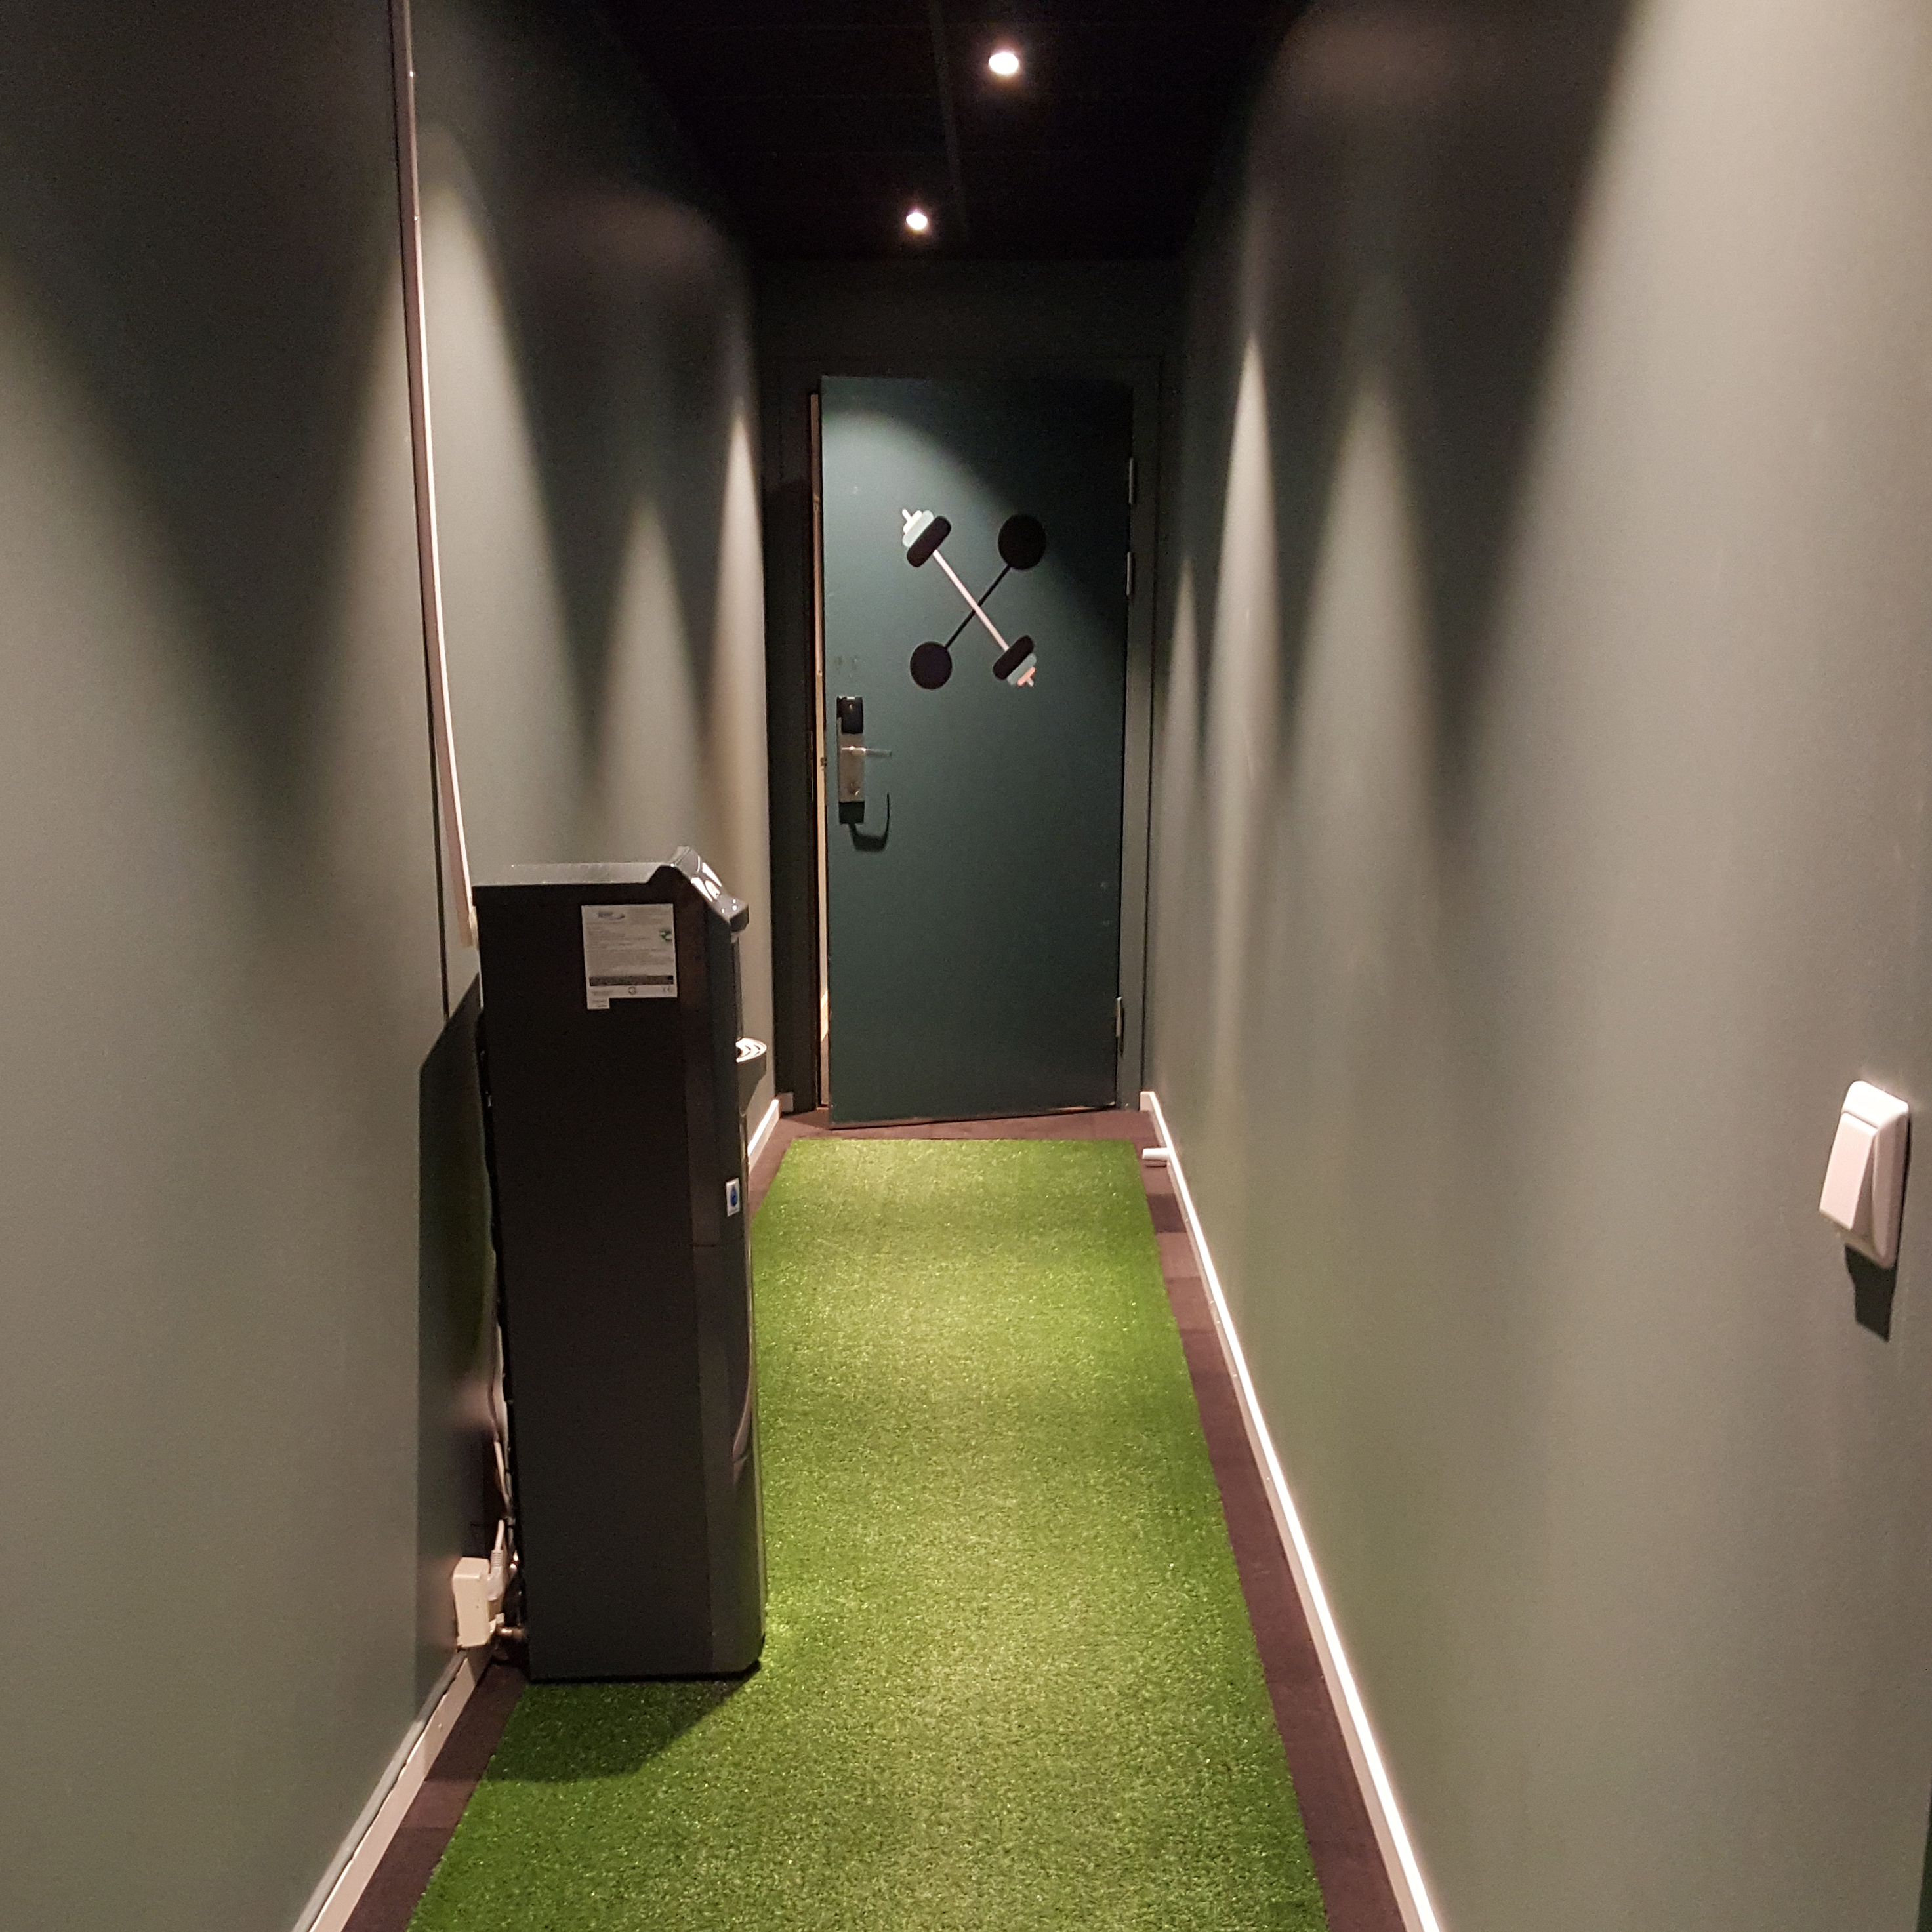 Picture of a hallway